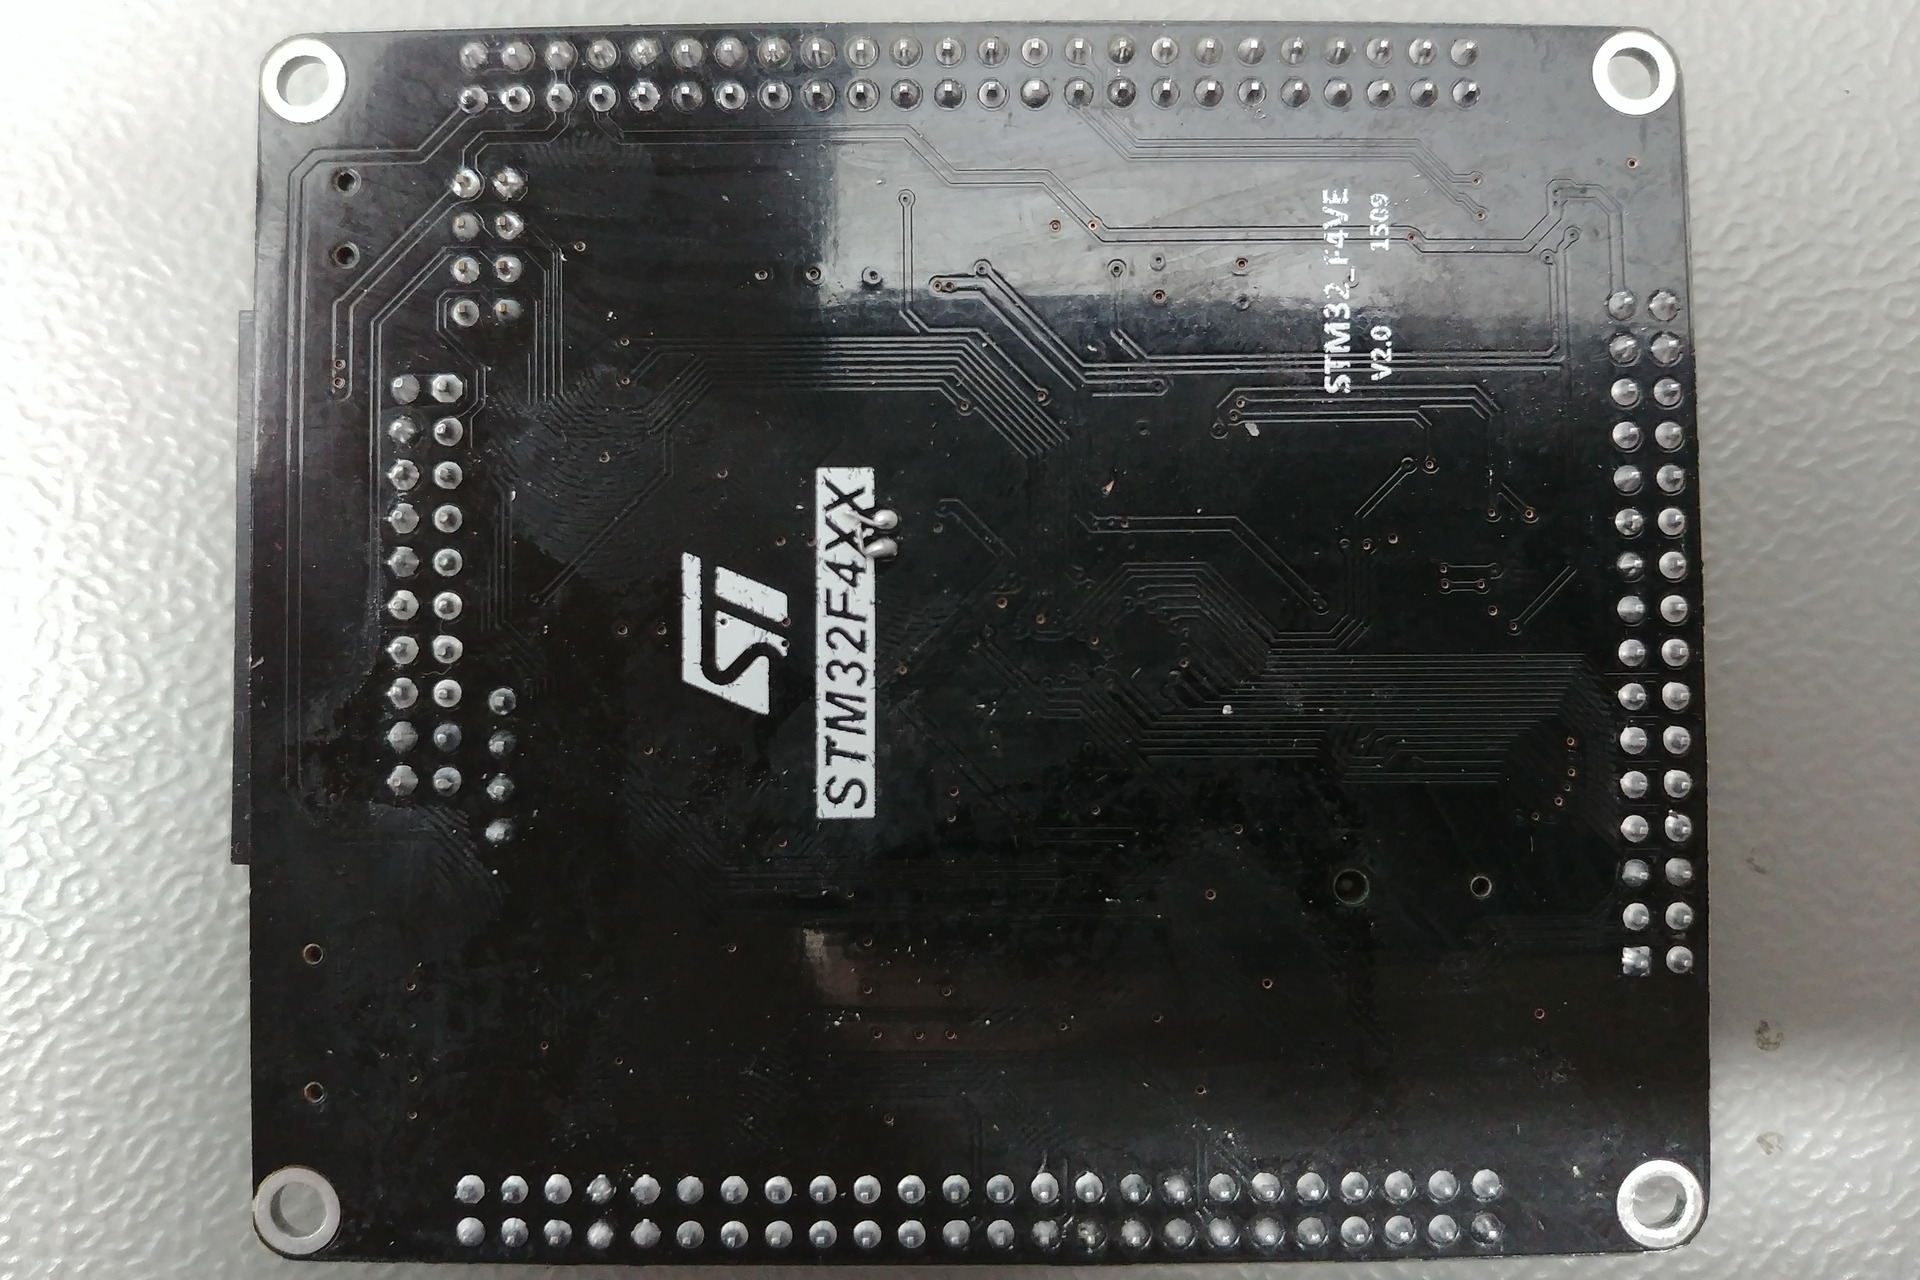 STM32 F4VE V2.0 Bottom view